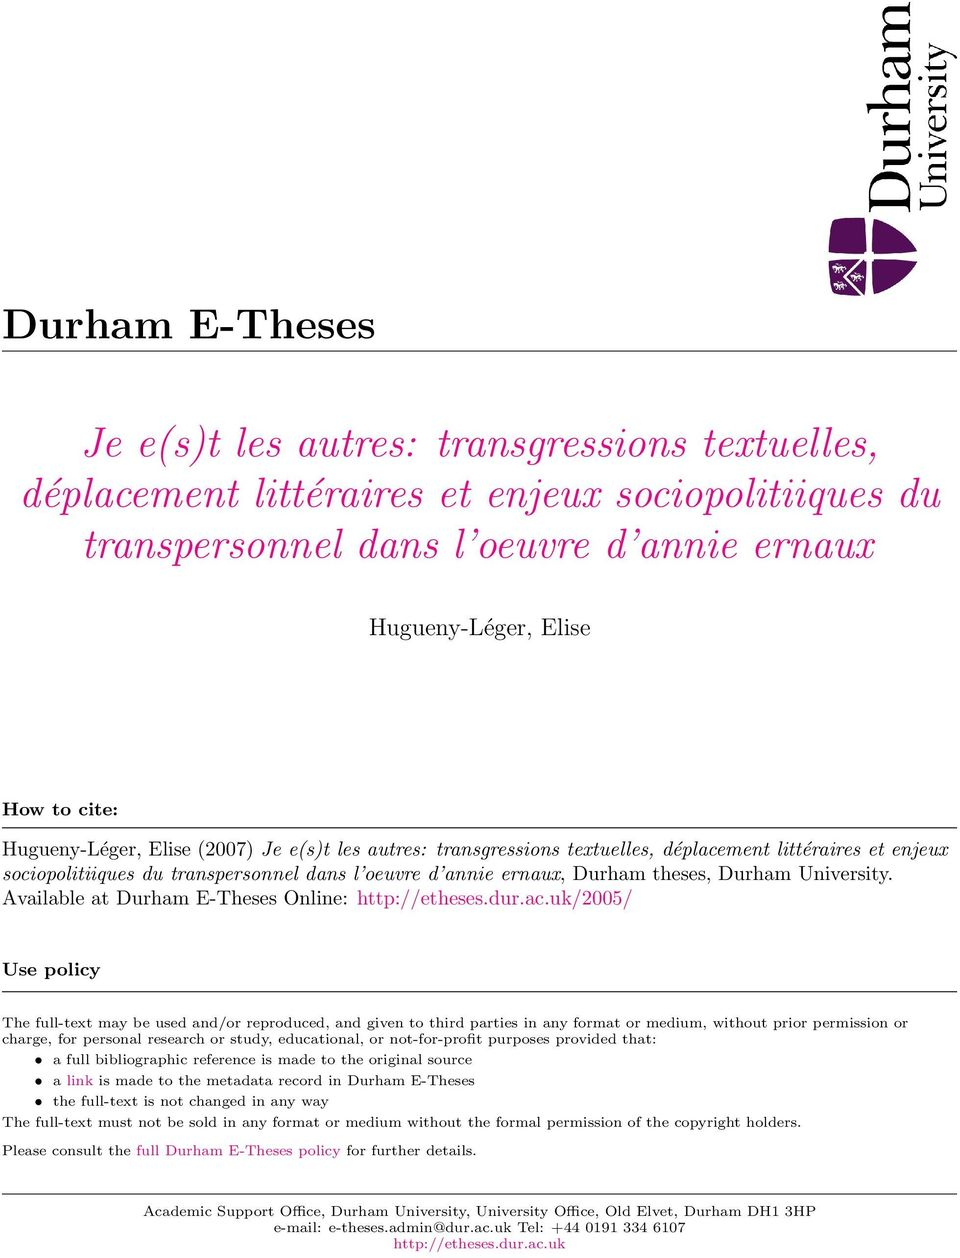 University. Available at Durham E-Theses Online: http://etheses.dur.ac.